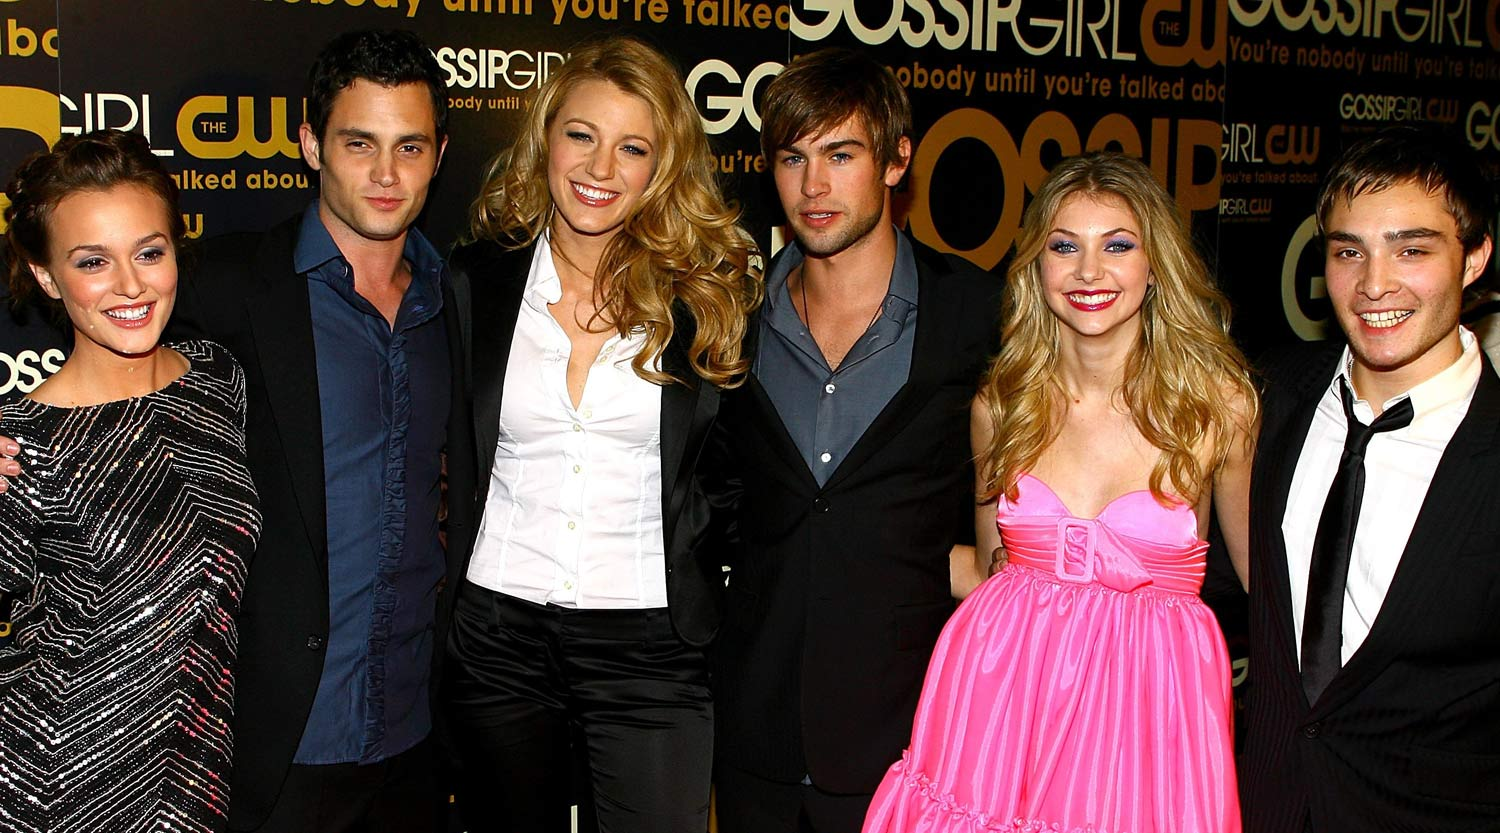 'Gossip Girl' Turns 13 – Look Back at the Cast at the 2007 Premiere Event!